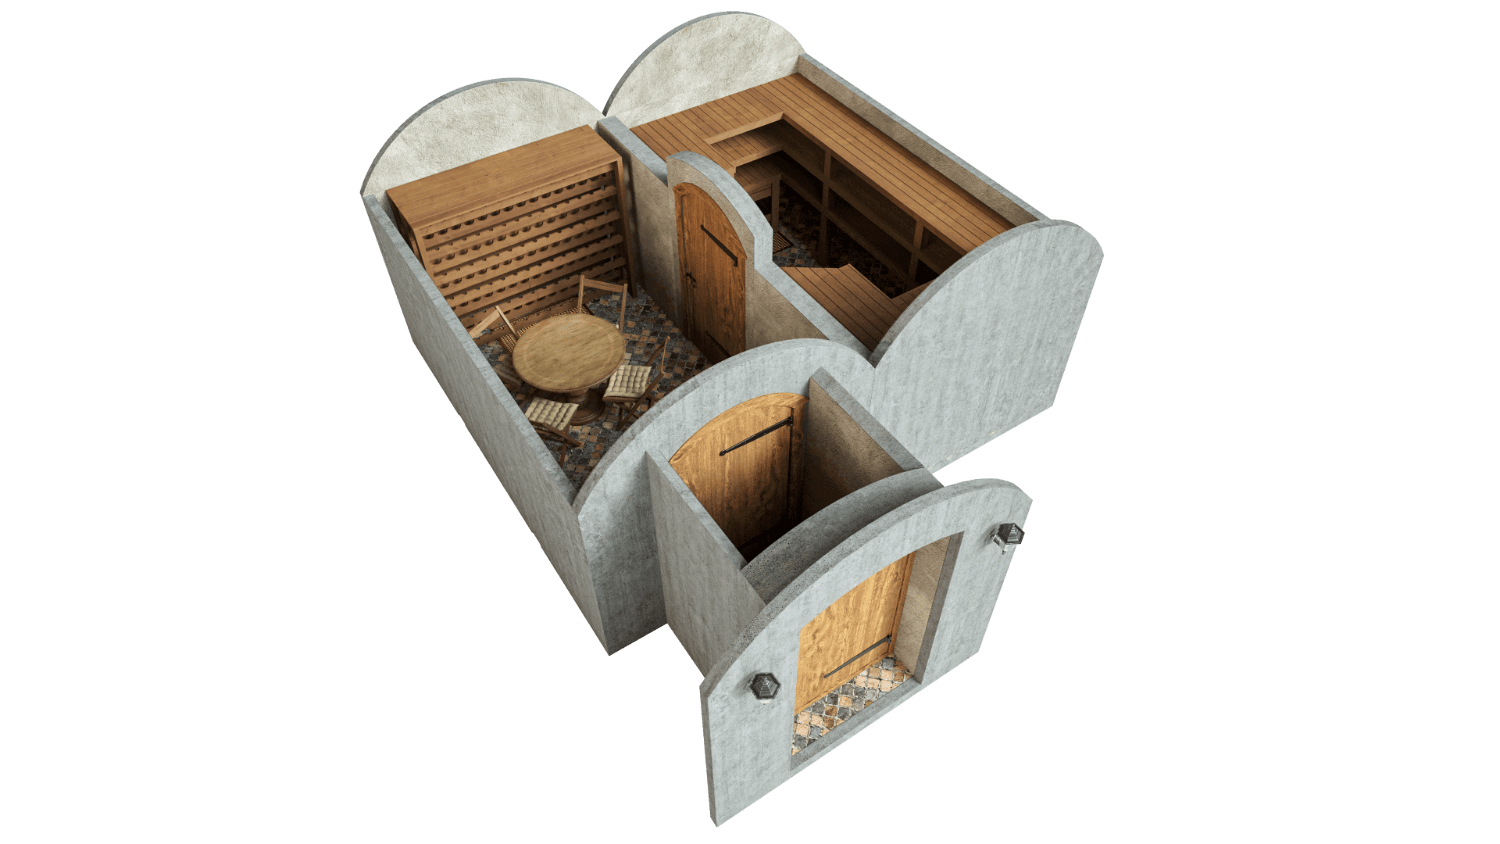 Cellar 21.4 m² STANDARD PACKAGE